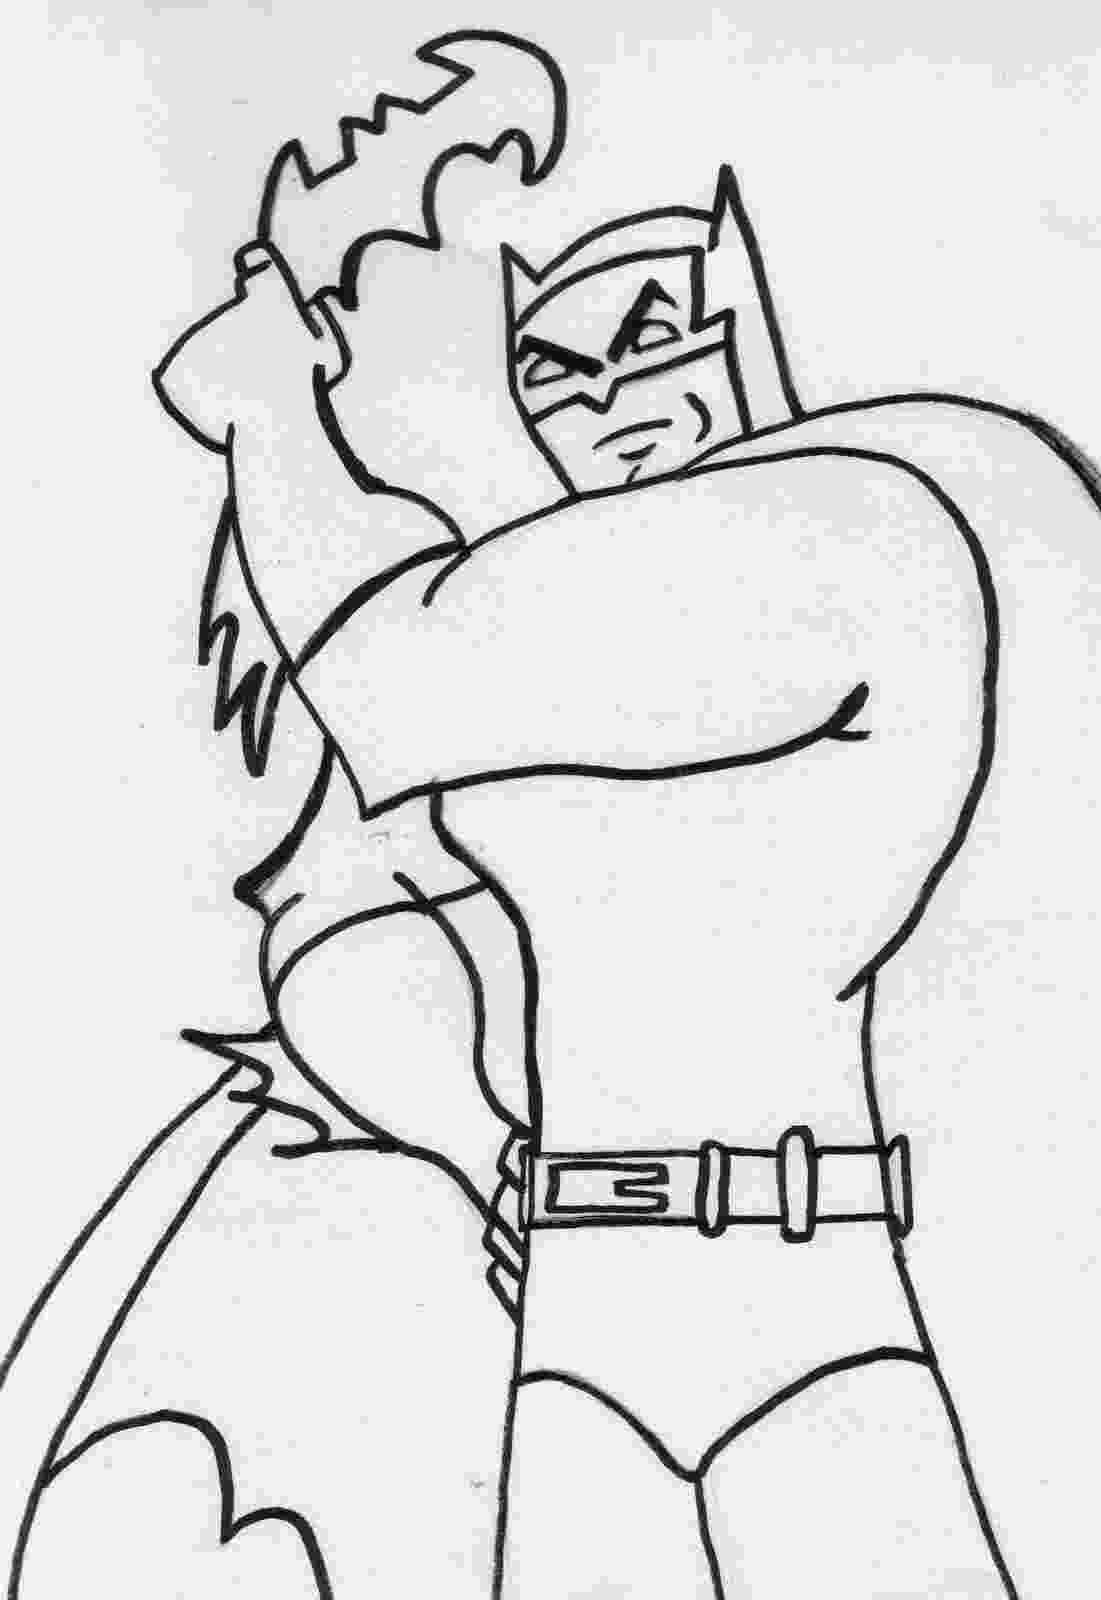 batman printables batman and robin coloring pages to download and print for free printables batman 1 3